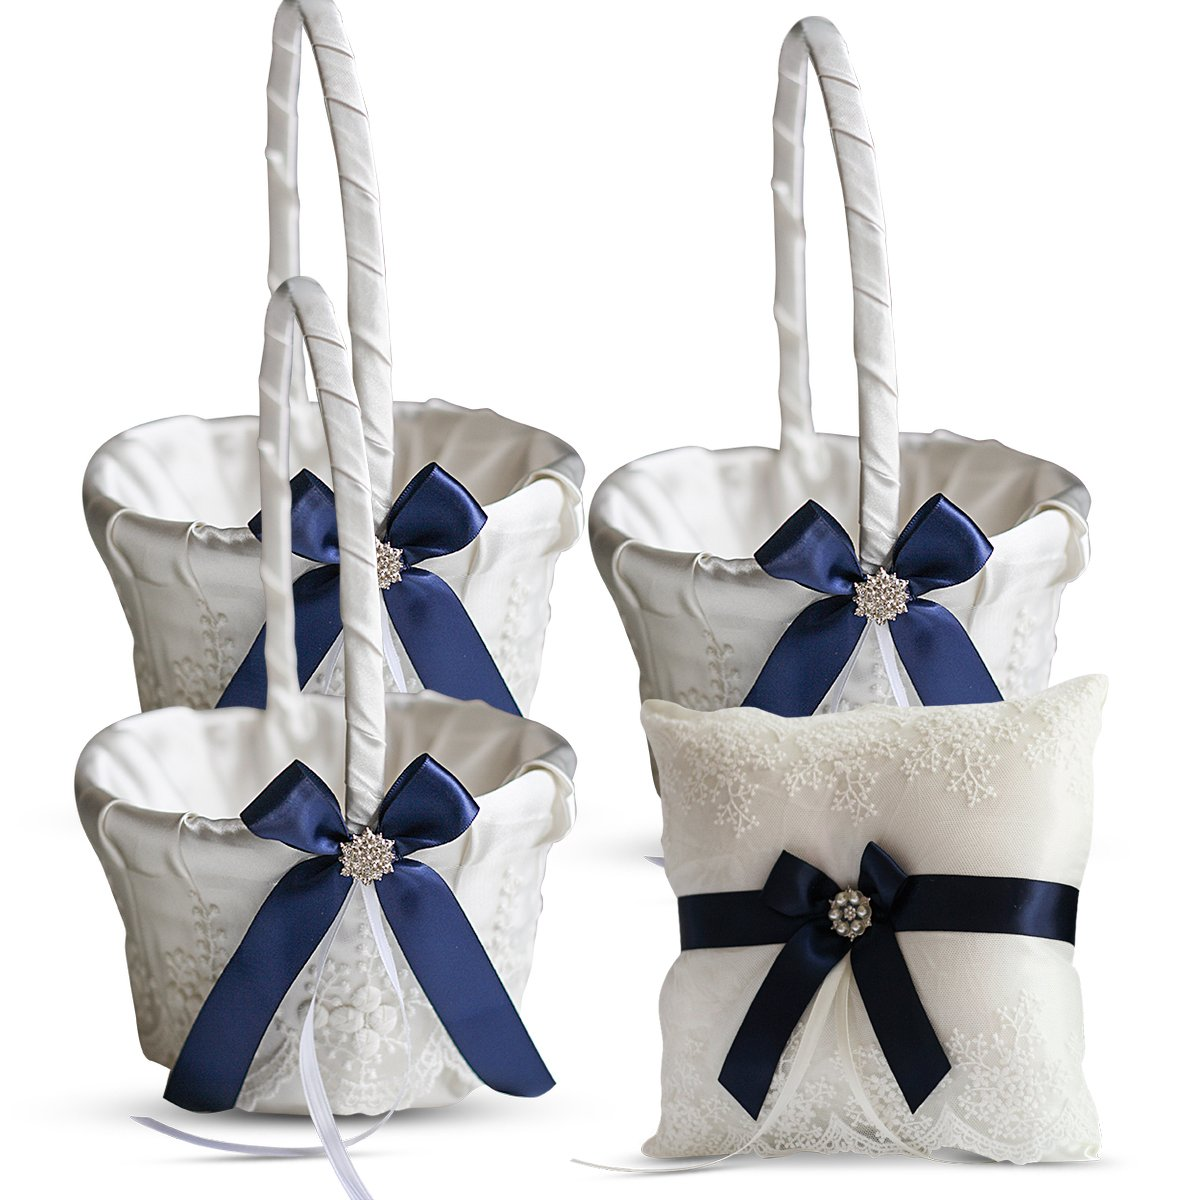 Roman Store Ivory Ring Bearer Pillow and Basket Set | Lace Collection | Flower Girl & Welcome Basket for Guest | Handmade Wedding Baskets & Pillows (Navy Blue) by Roman Store (Image #1)